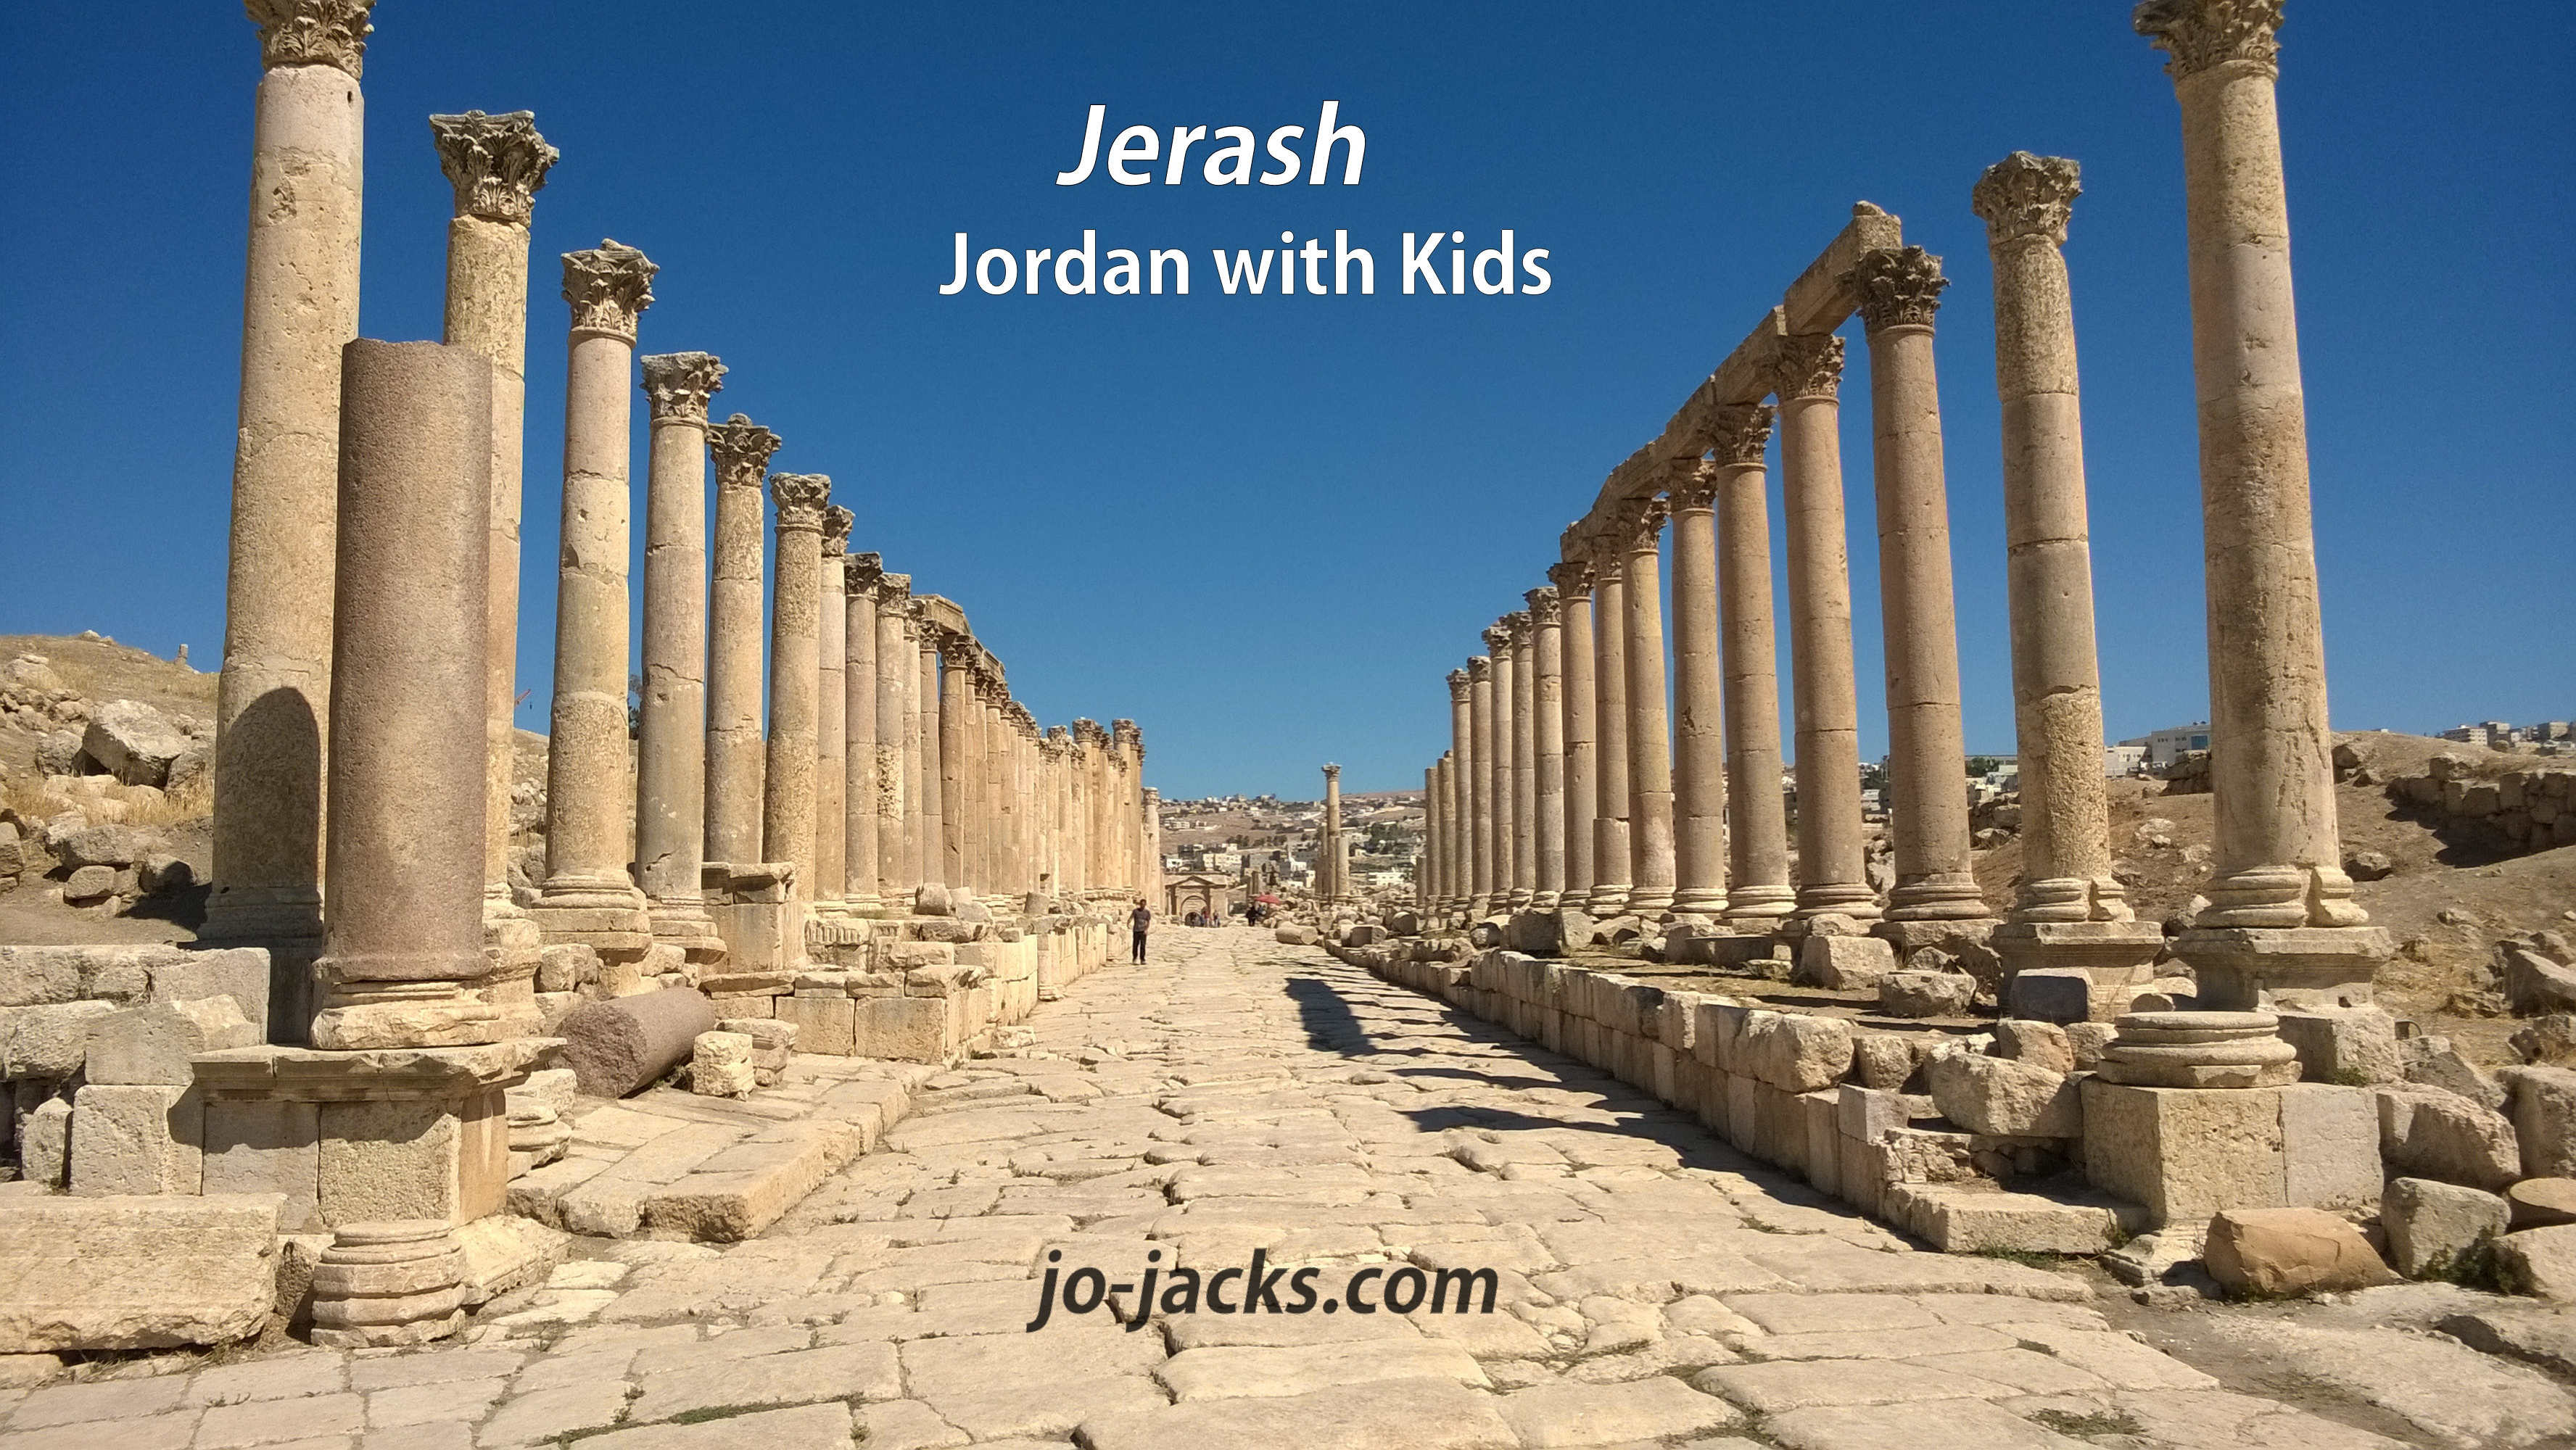 Jerash Rocks! Jordan with Kids